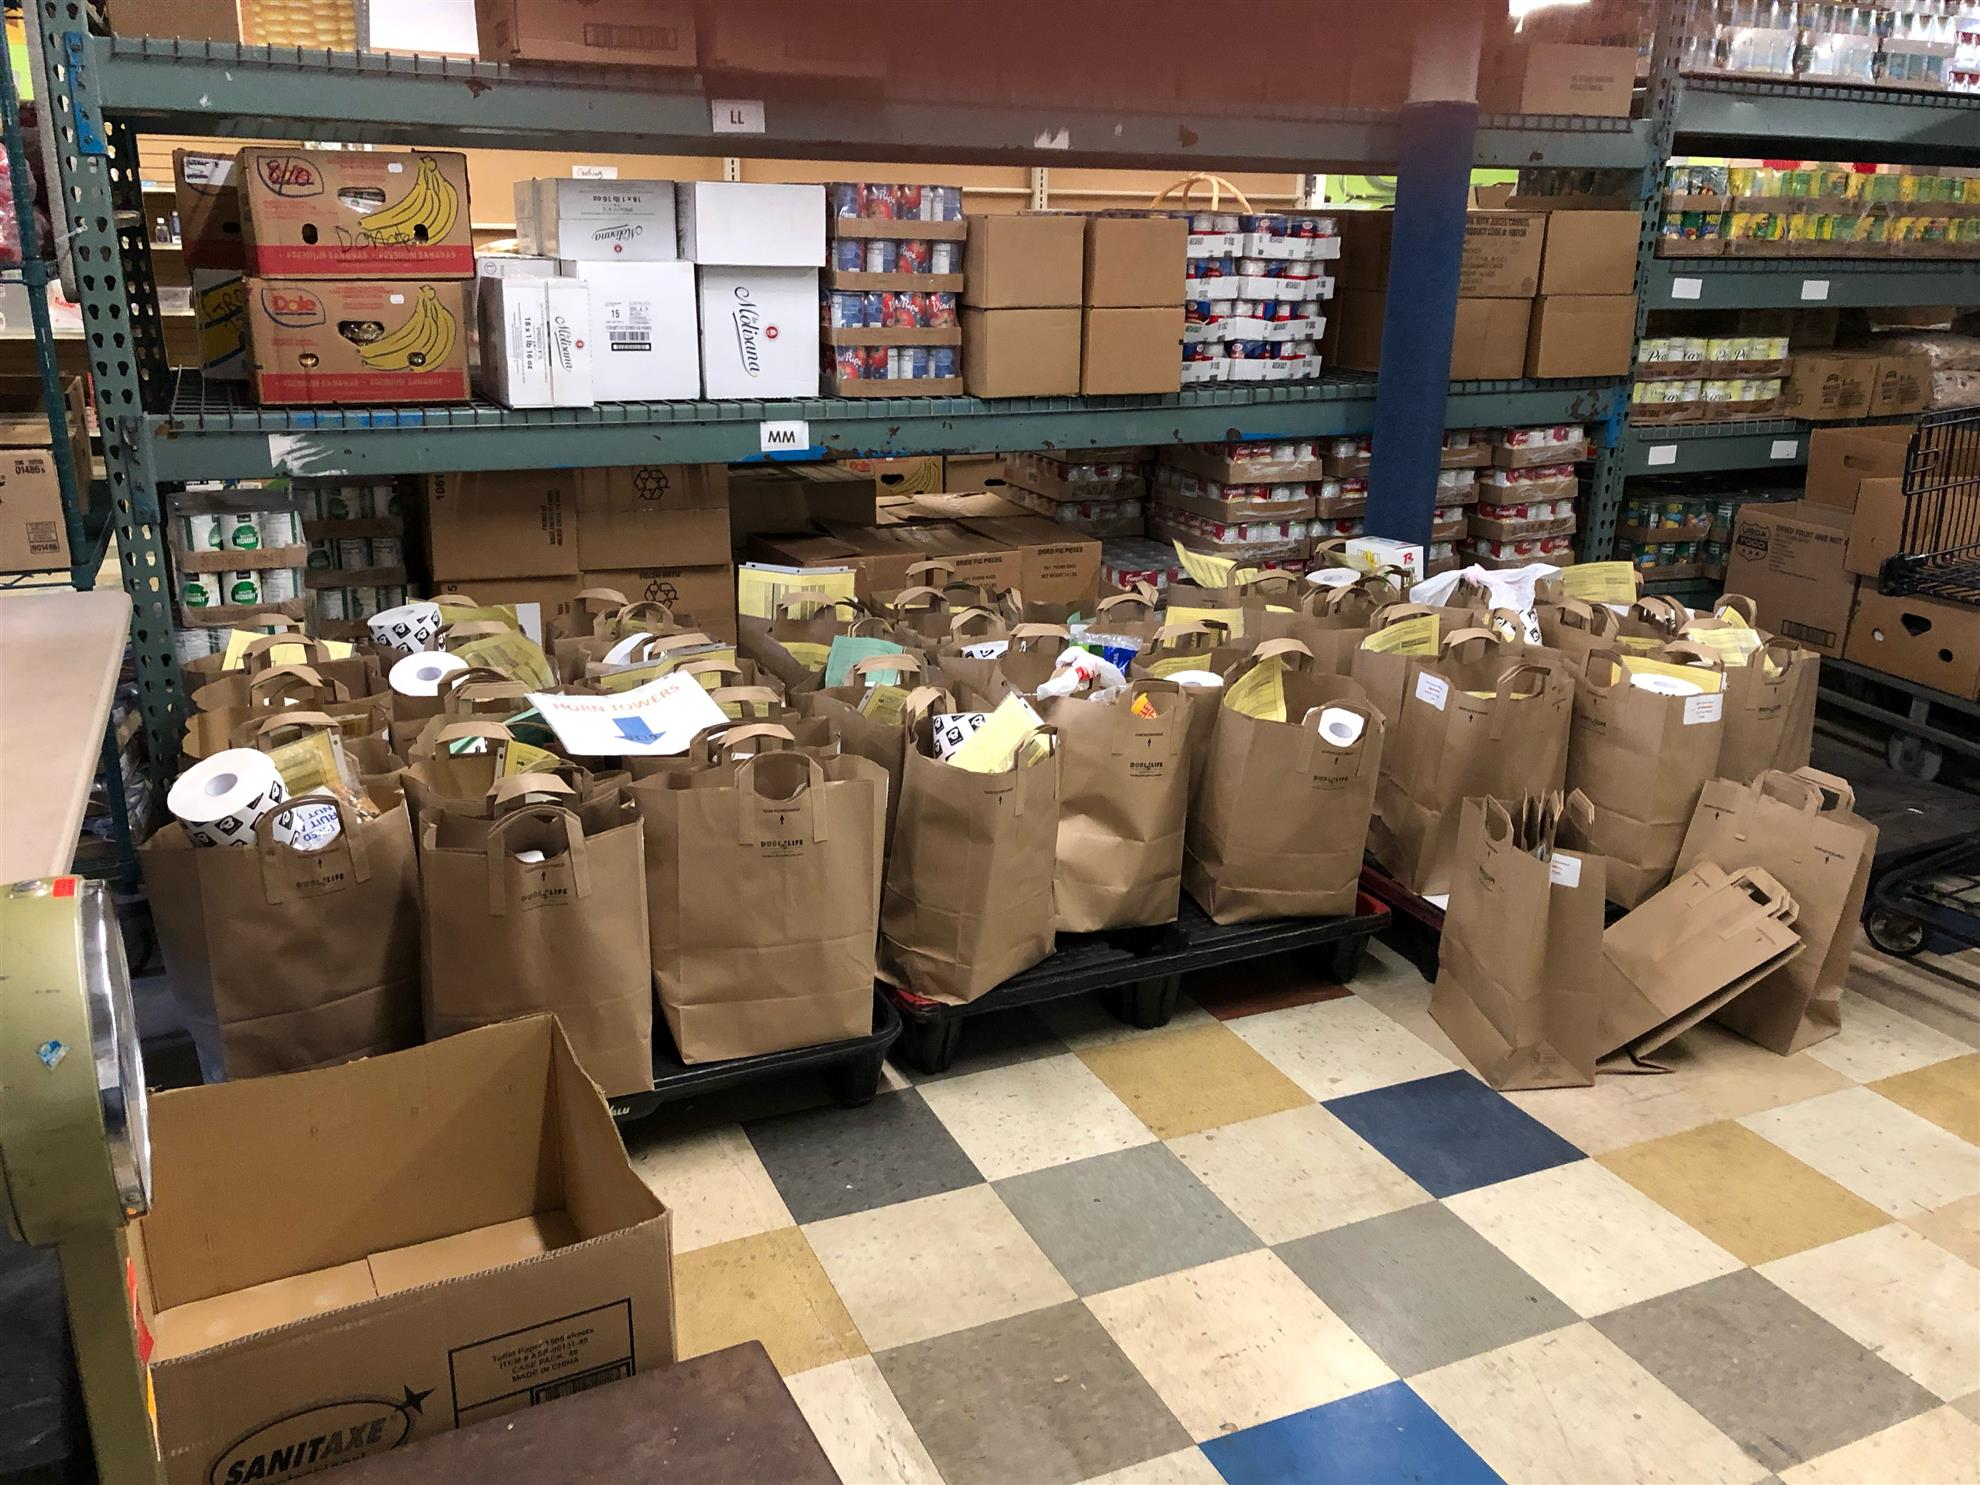 The results of our Rotary volunteers' good work at the CES food shelf. #PeopleofAction